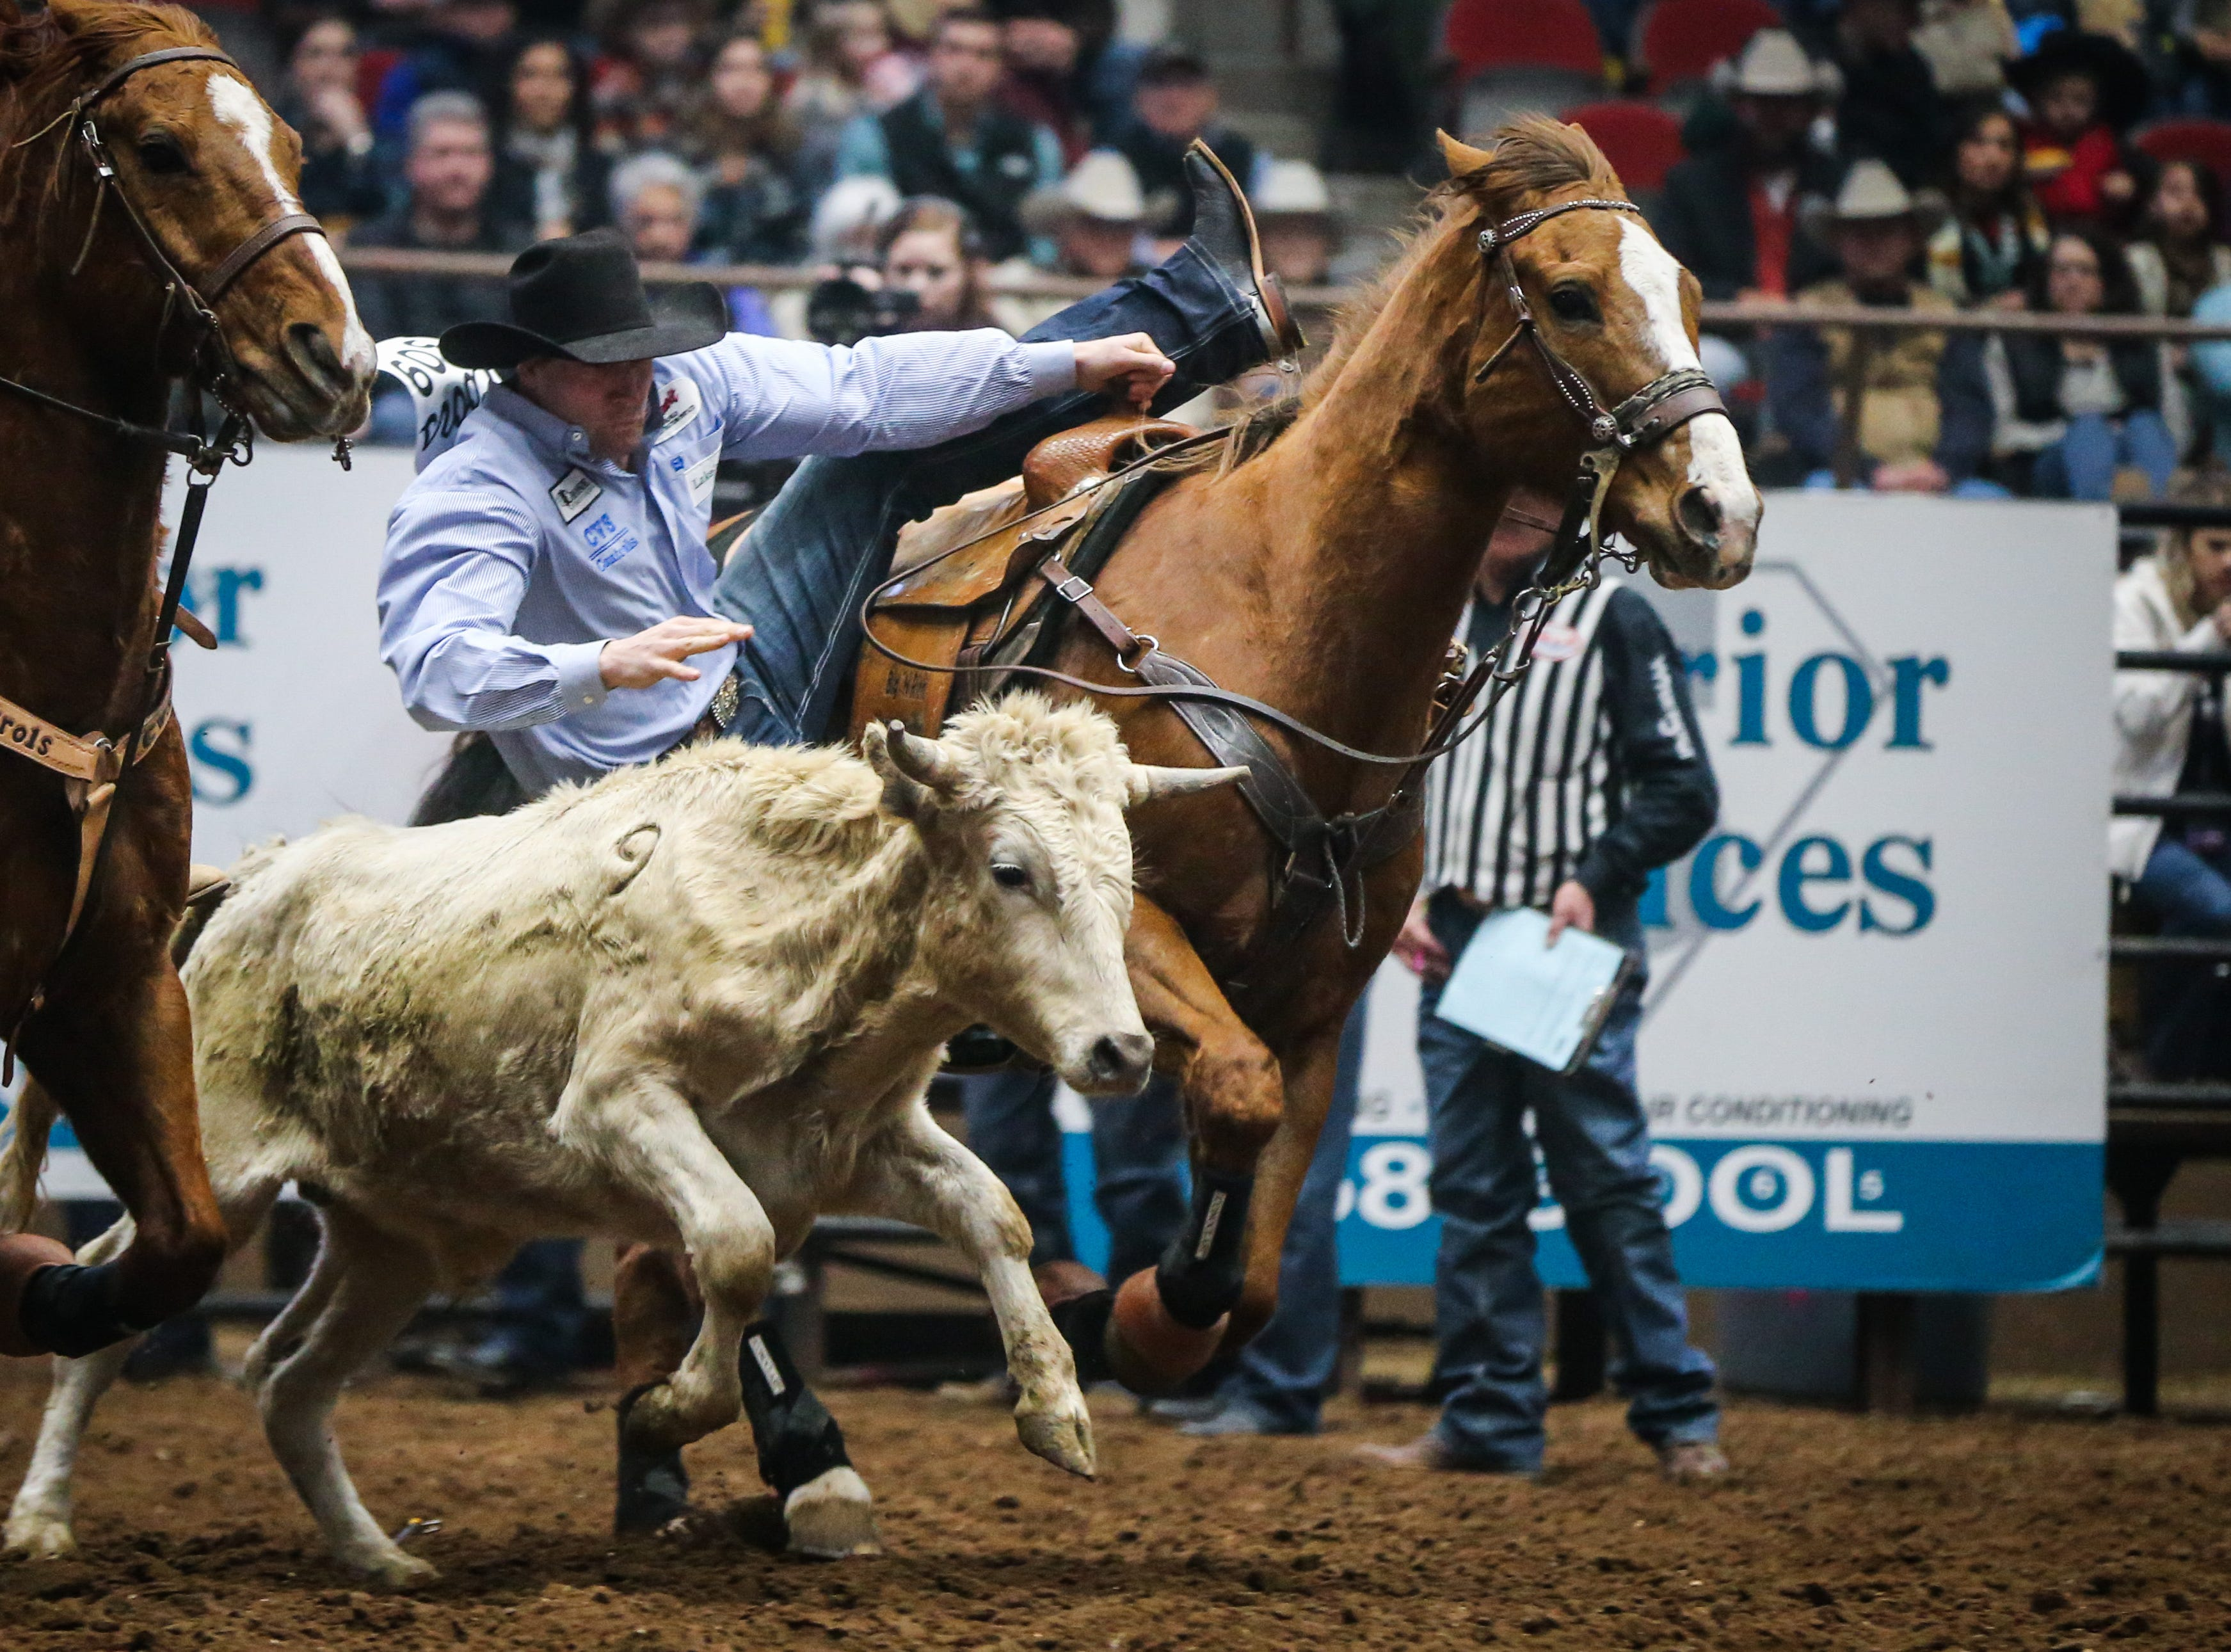 Scott Guenthner rides out to wrestle a steer during the San Angelo Stock Show & Rodeo matinee show Saturday, Feb. 9, 2019, at Foster Communications Coliseum.